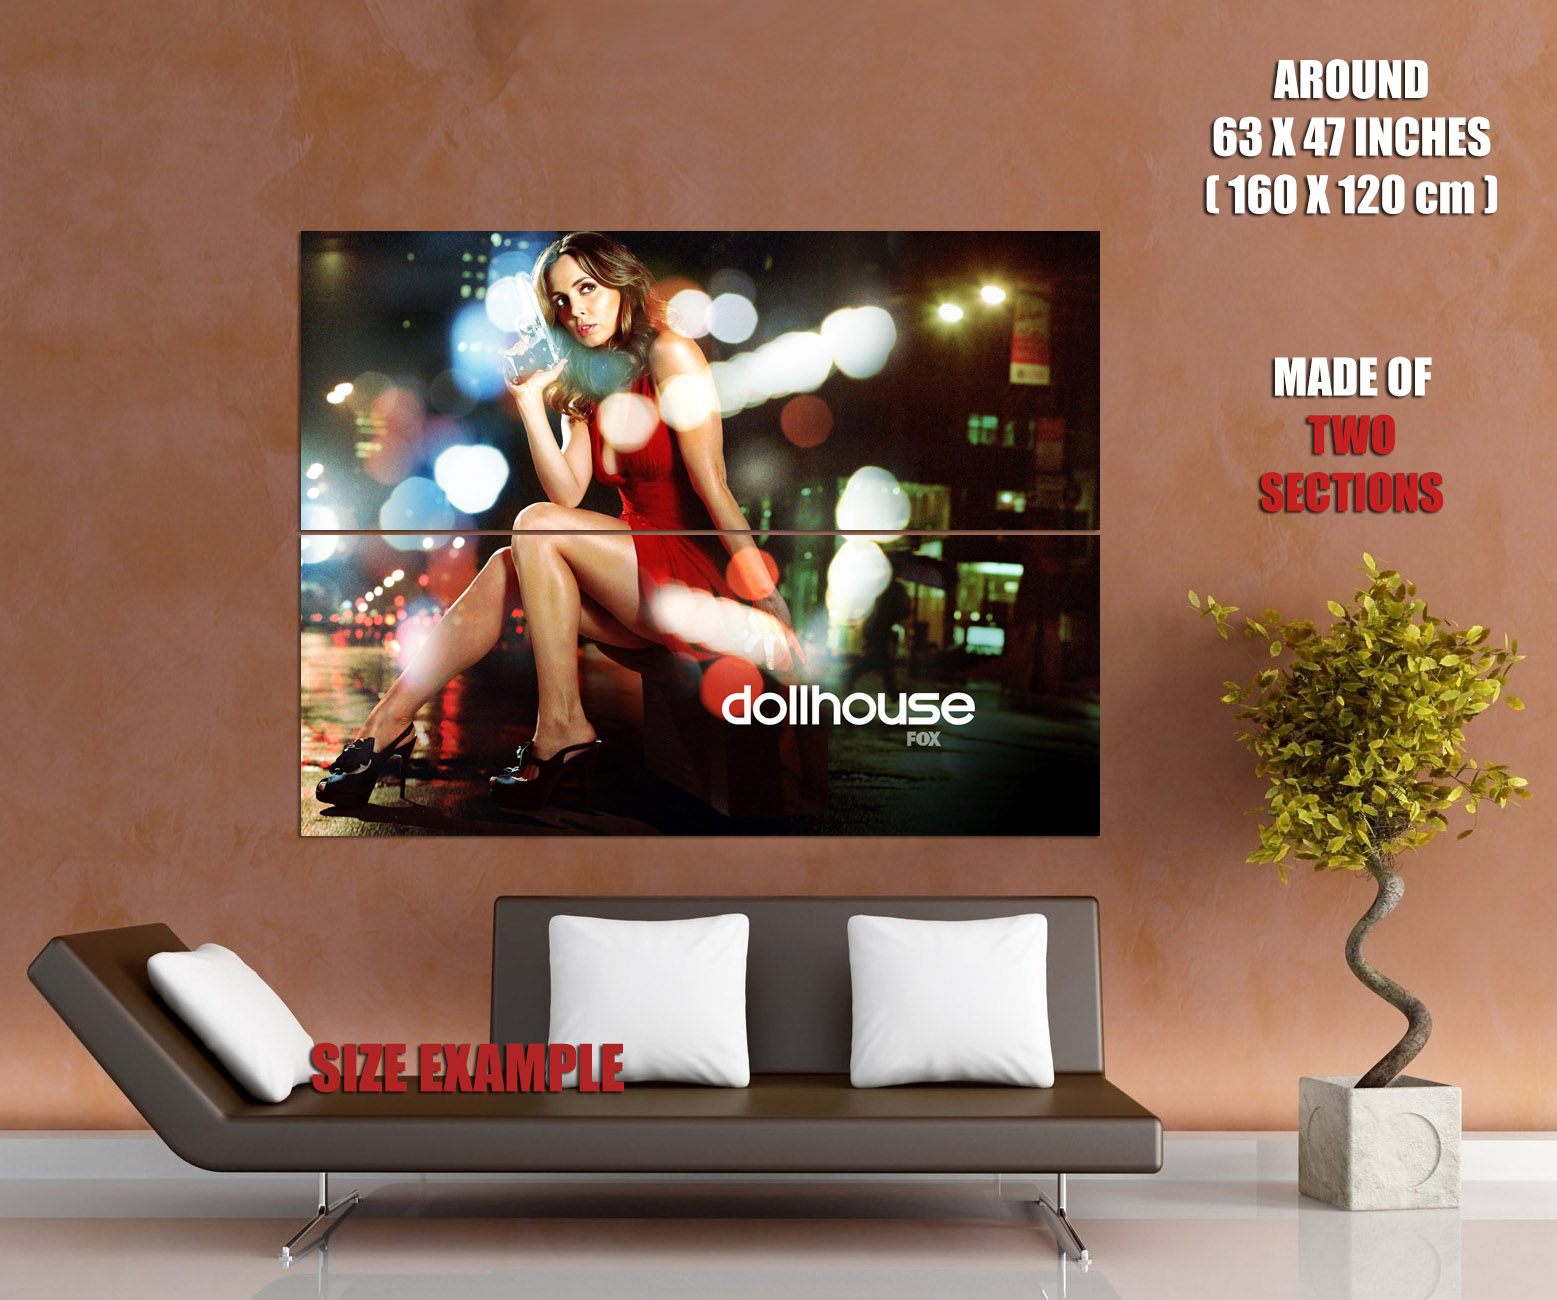 Eliza-Dushku-Hot-Red-Dress-Gun-Sexy-Dollhouse-Series-HUGE-GIANT-PRINT-POSTER